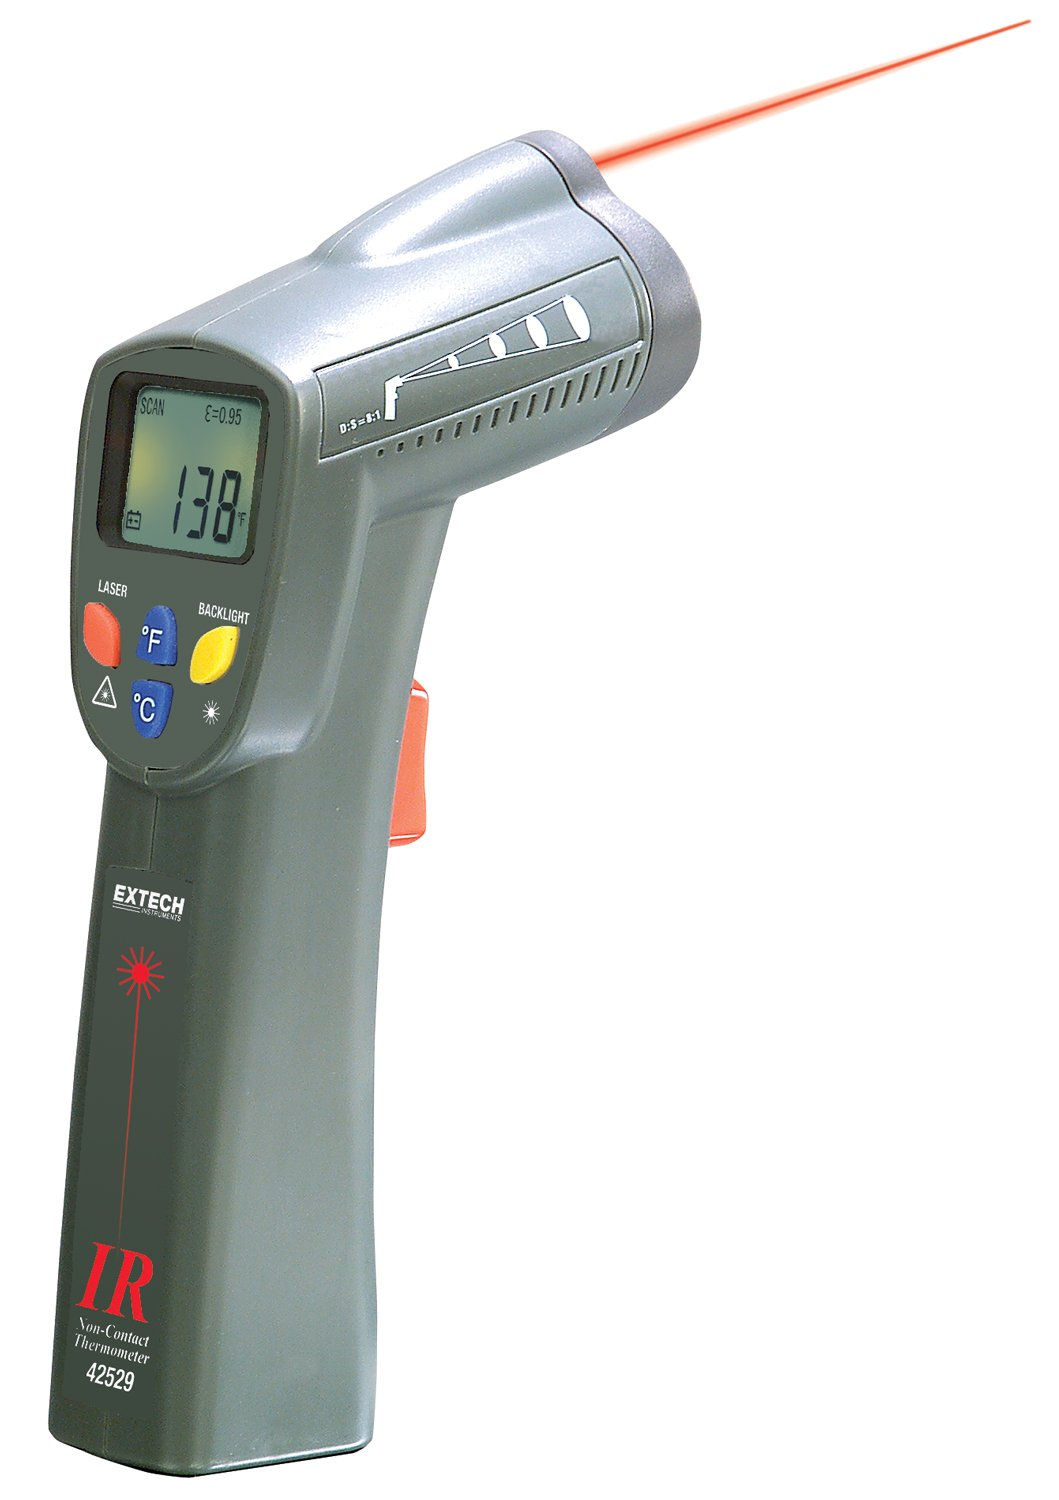 Extech 42529 Wide Range IR Thermometer